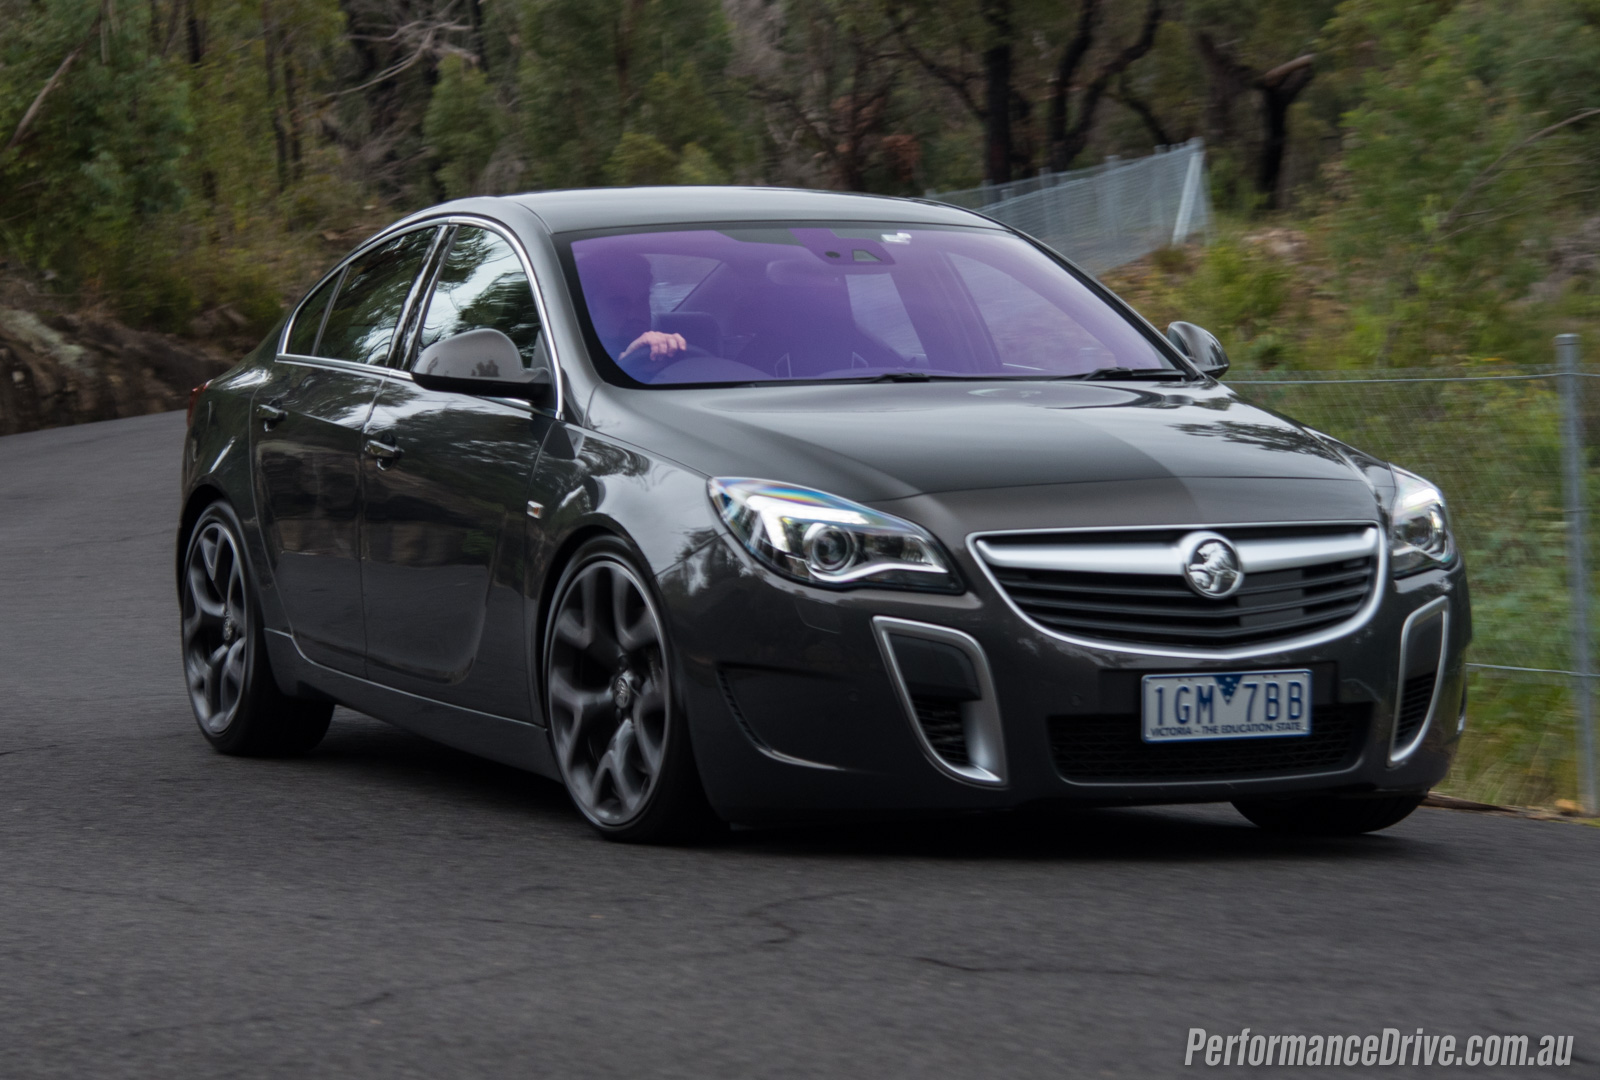 2016 Holden Insignia VXR review (video) – PerformanceDrive